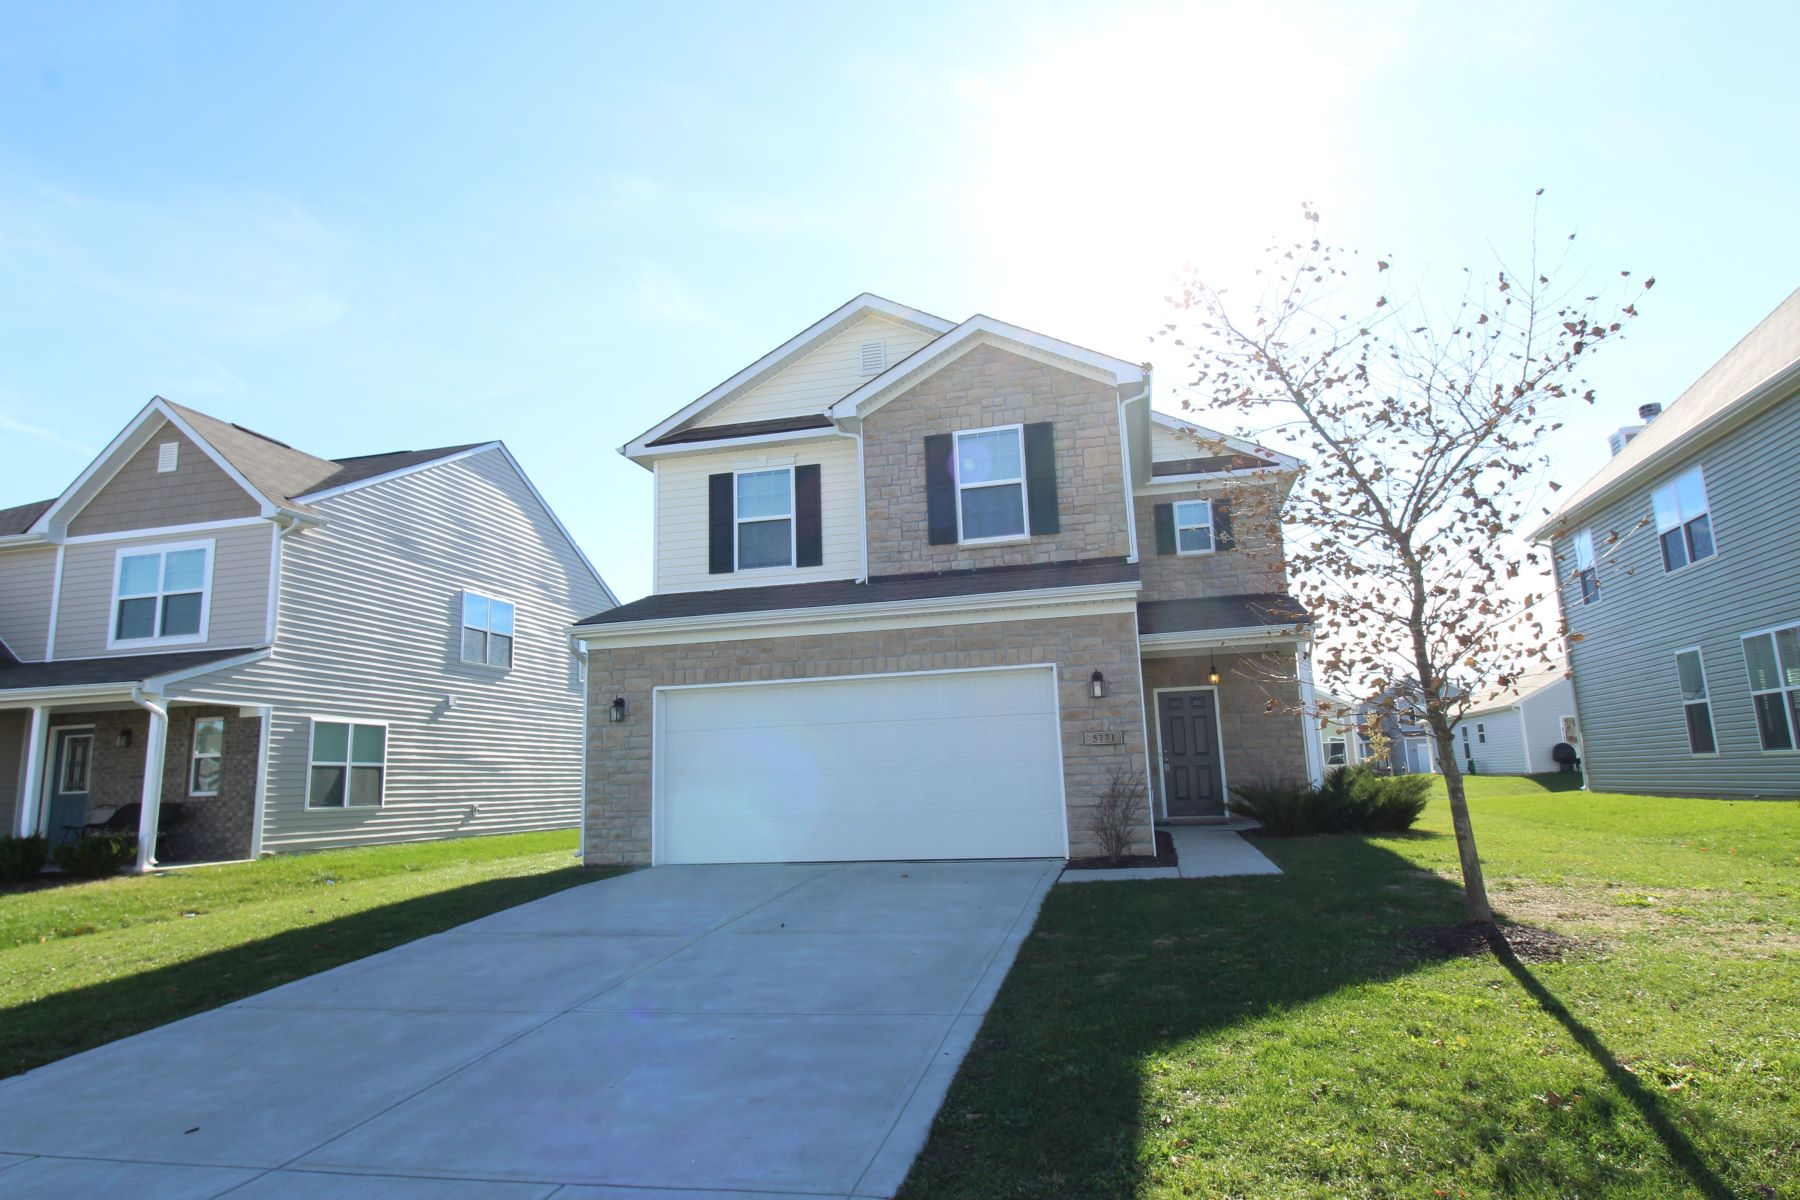 Single Family Home for Rent at Fantastic 3 Bedroom, 3 Bath Home in Walker Farms 5771 Weeping Willow Place Whitestown, Indiana 46075 United States